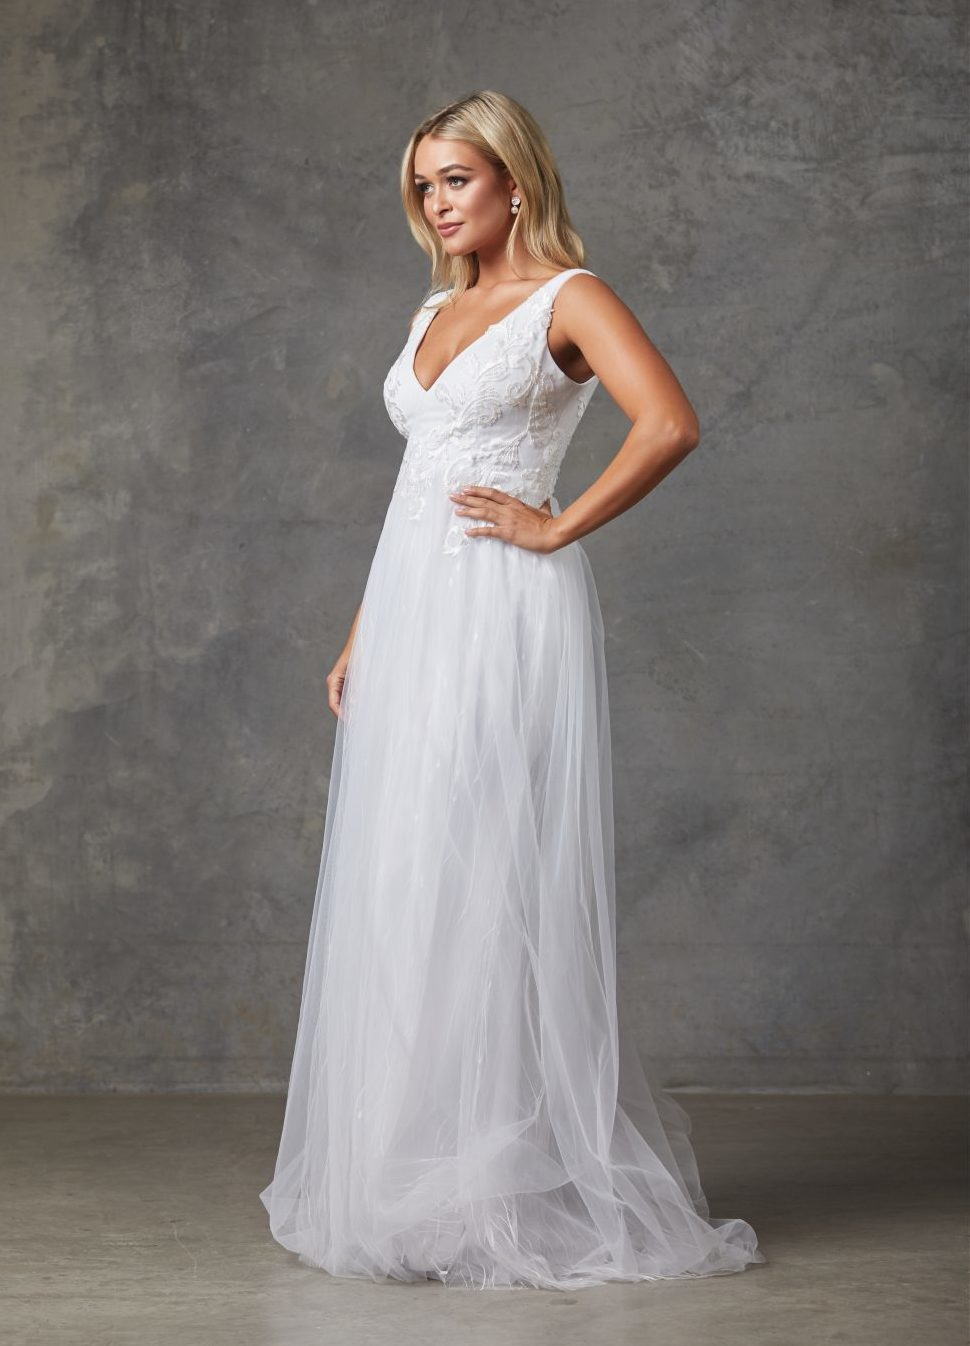 Liv Wedding Dress-Purewhite-side